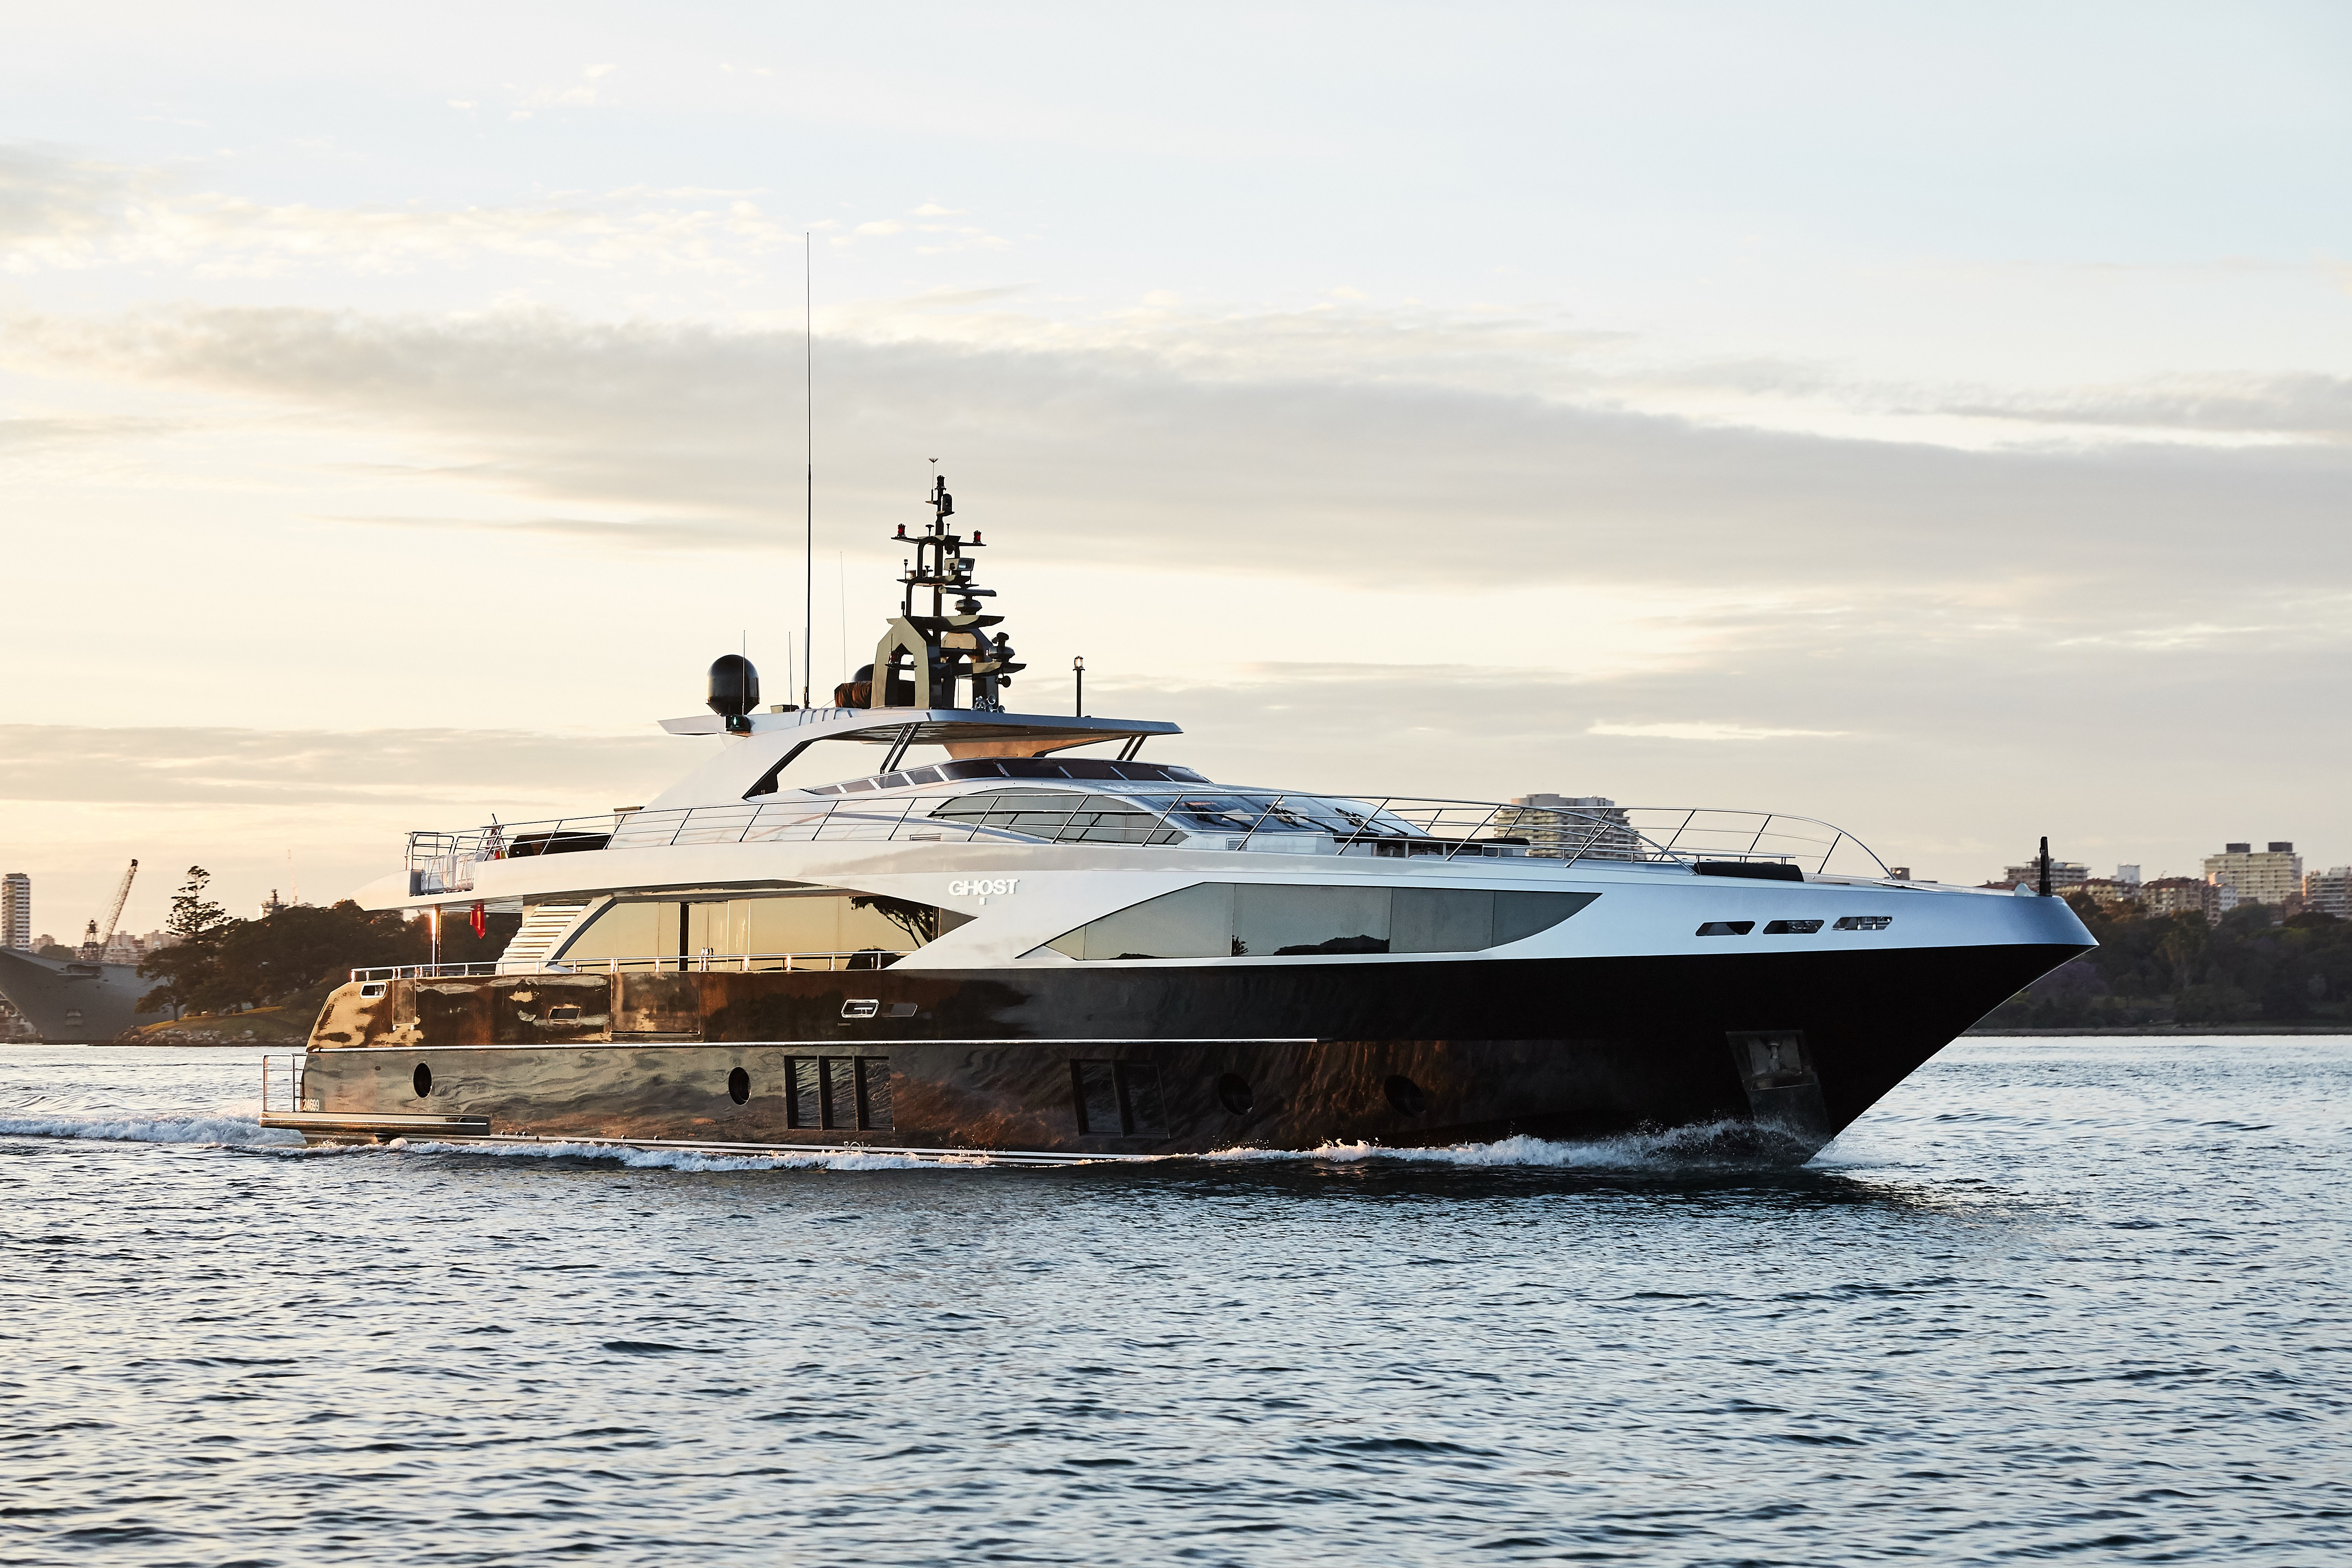 The 37m Yacht GHOST II